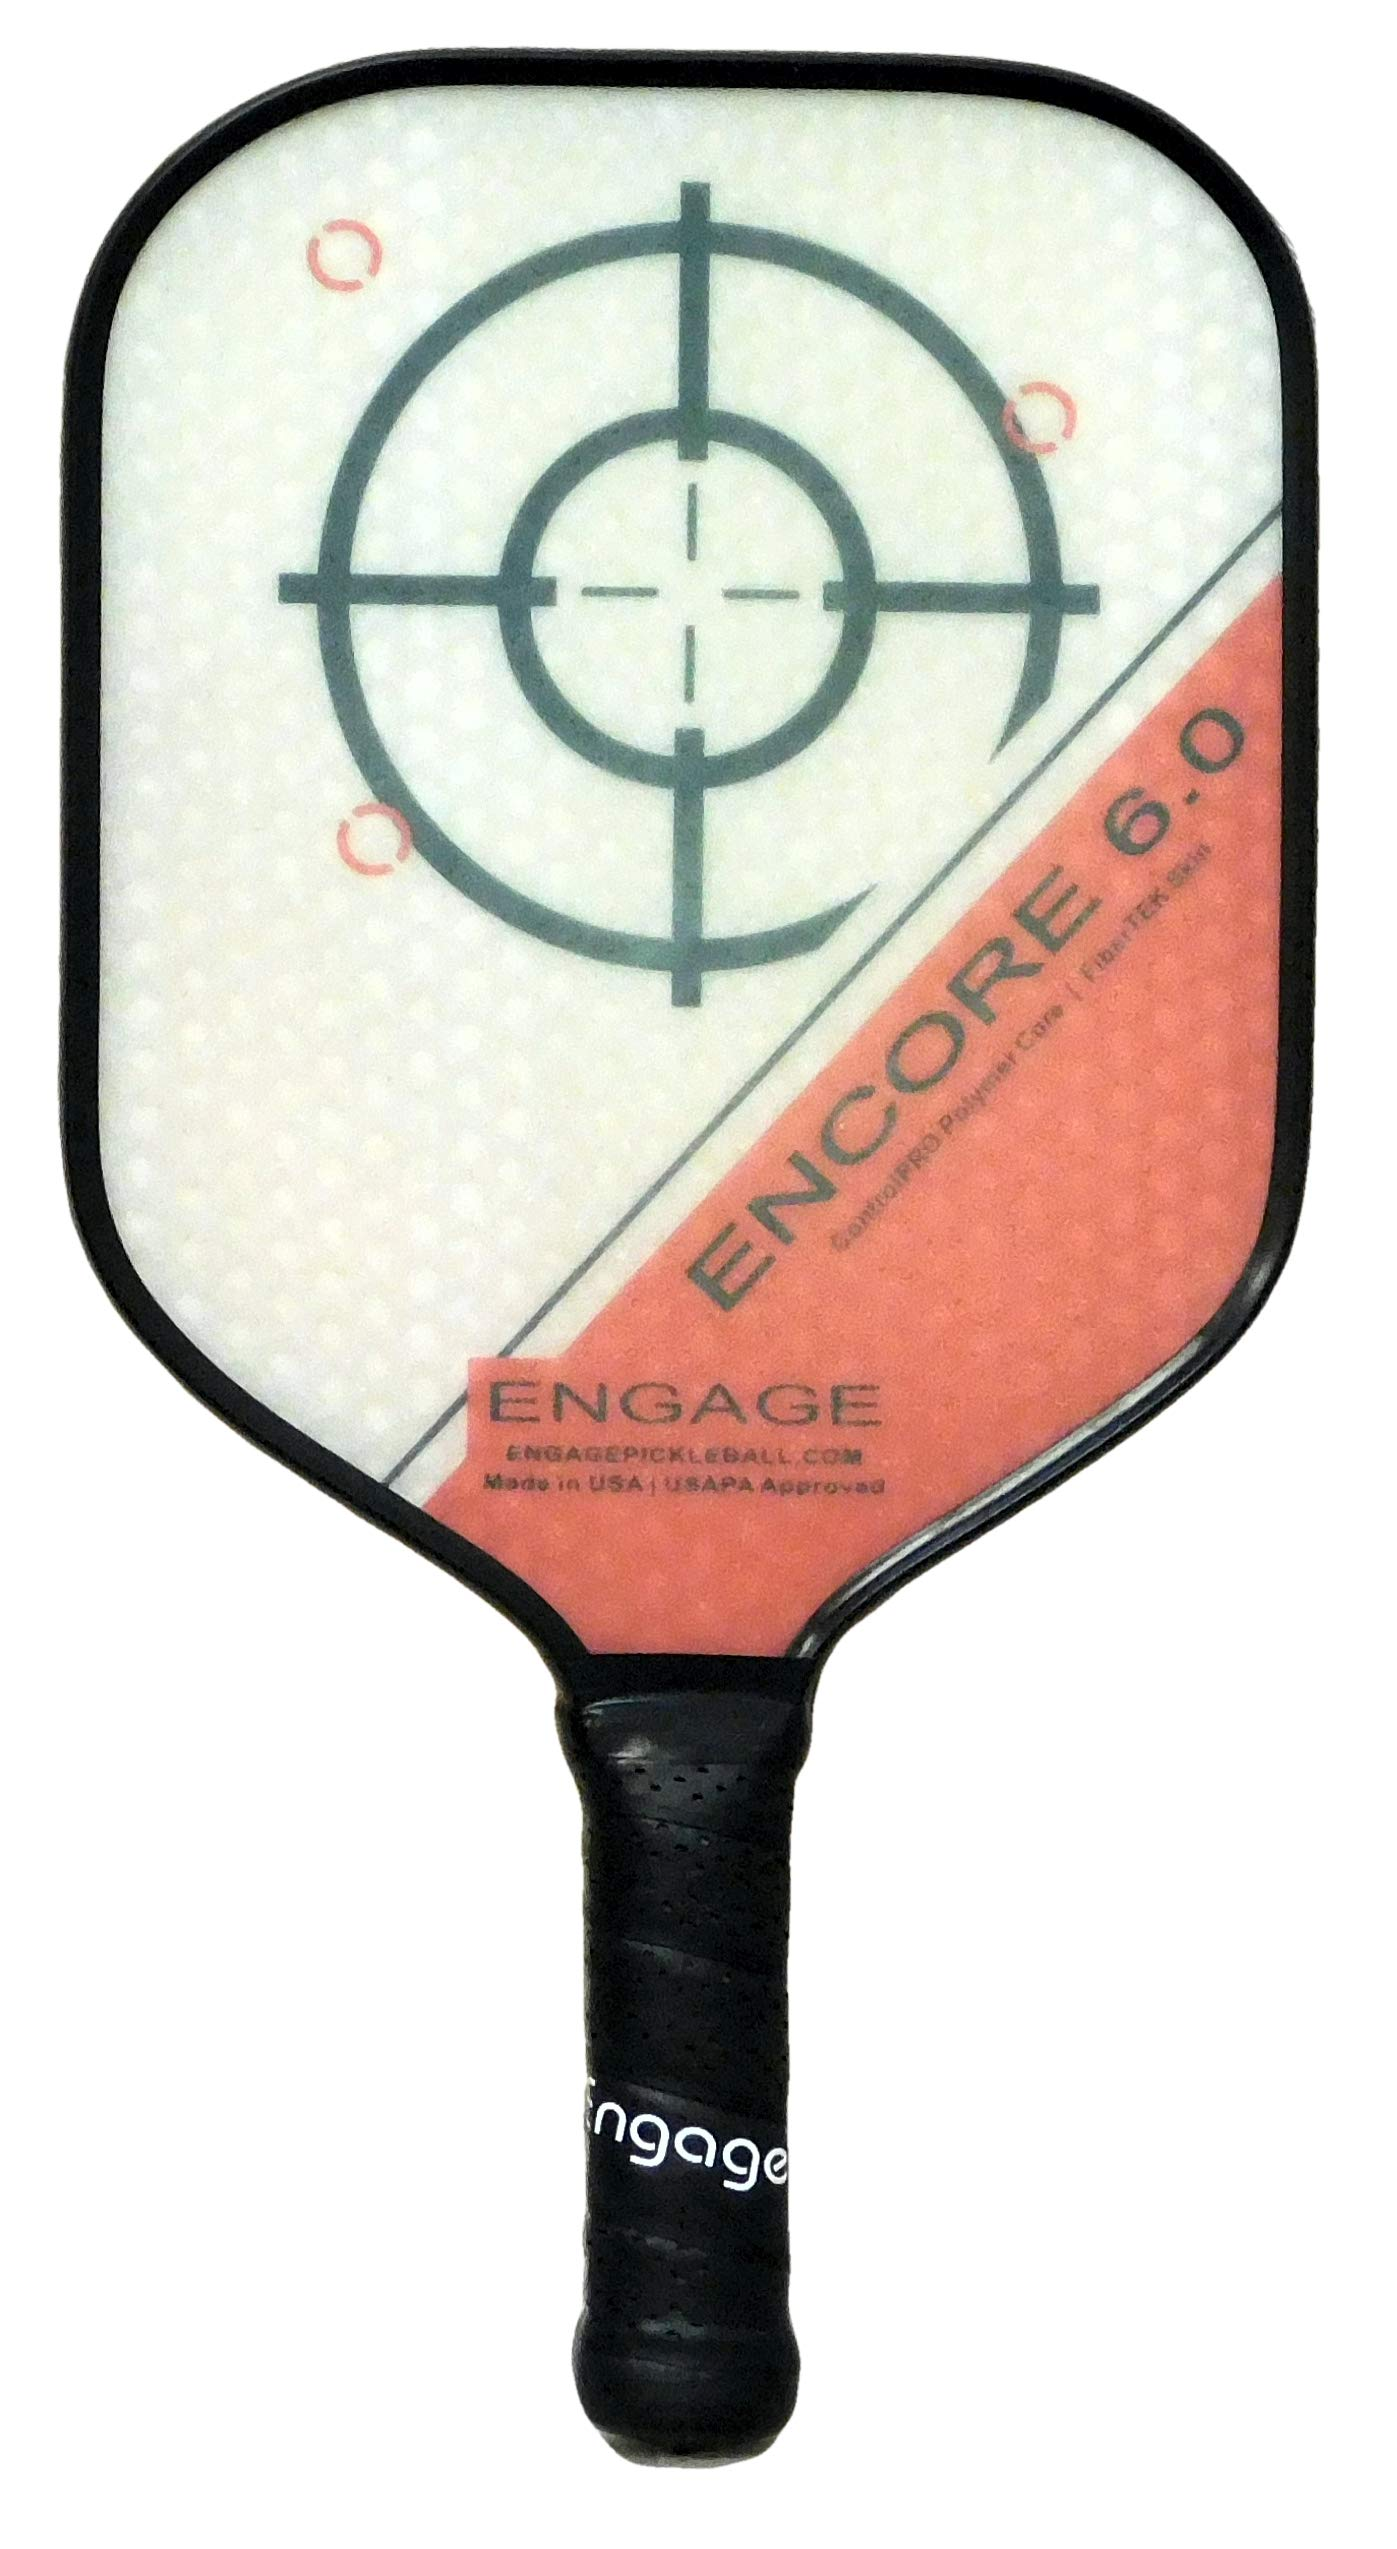 EP Engage Encore 6.0 Pickleball Paddle Standard Weight 7.9-8